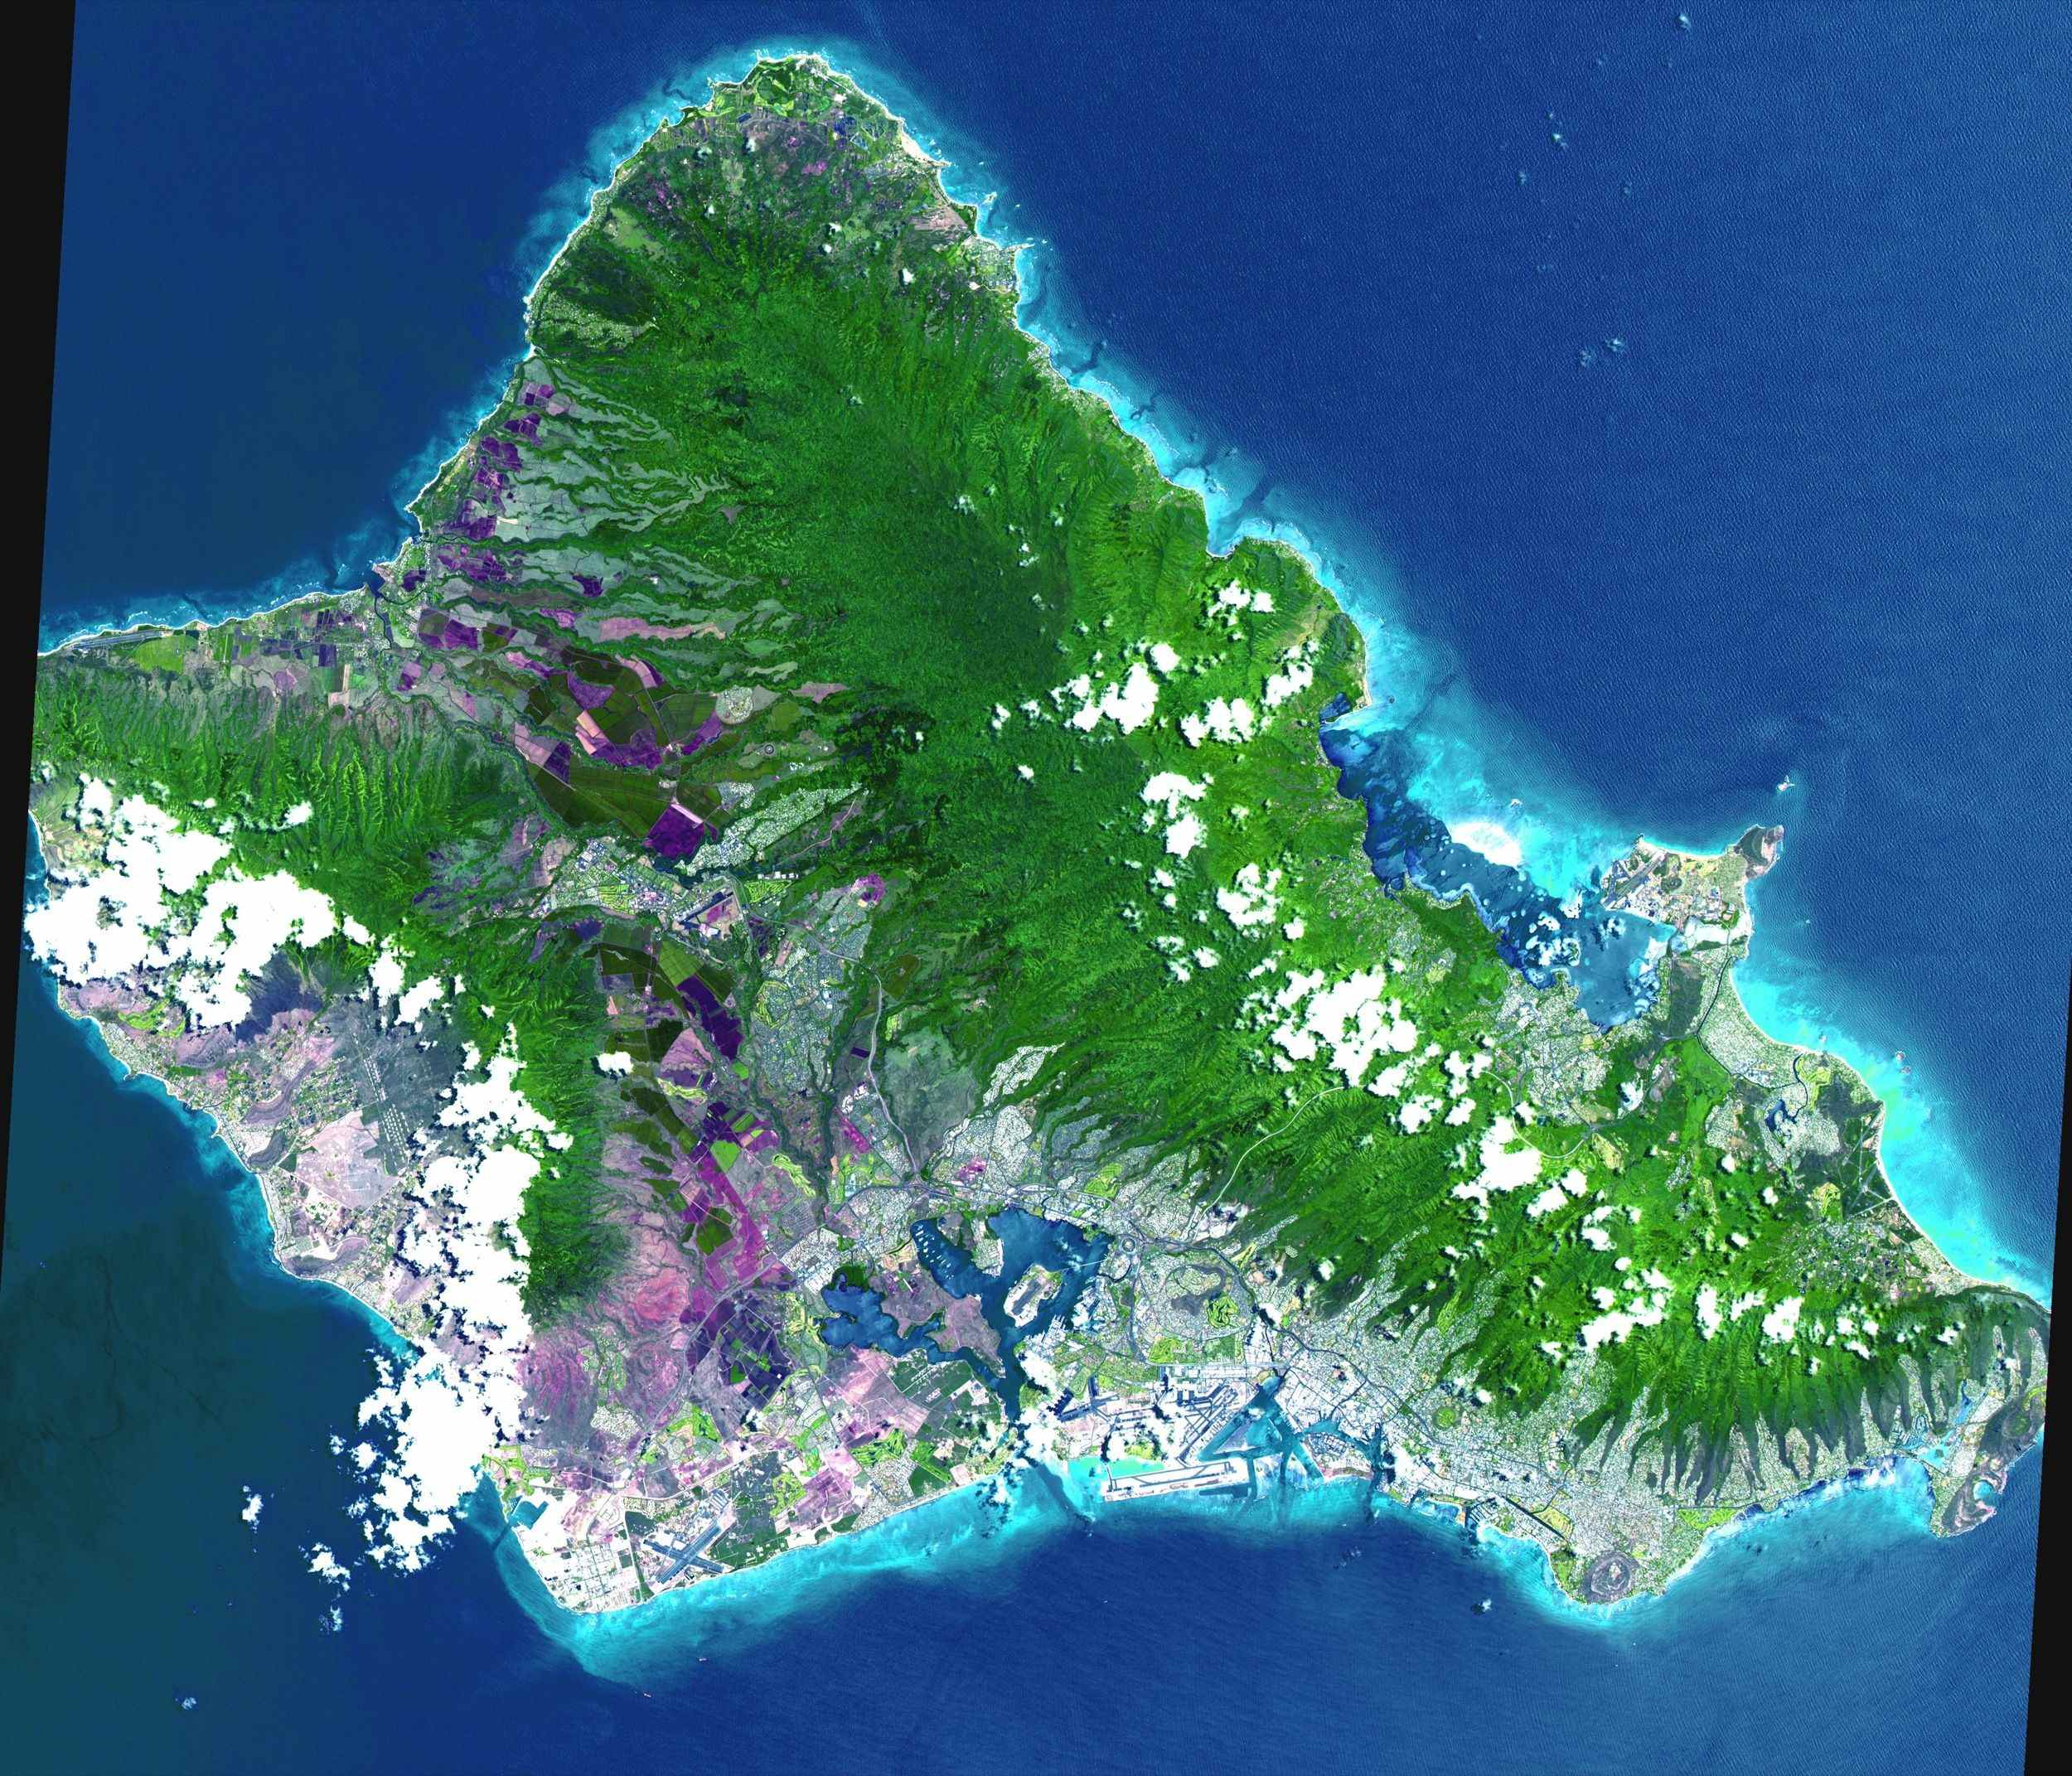 This image, acquired by NASA's Terra satellite on June 3, 2000, captured almost the entire island of Oahu, Hawaii.